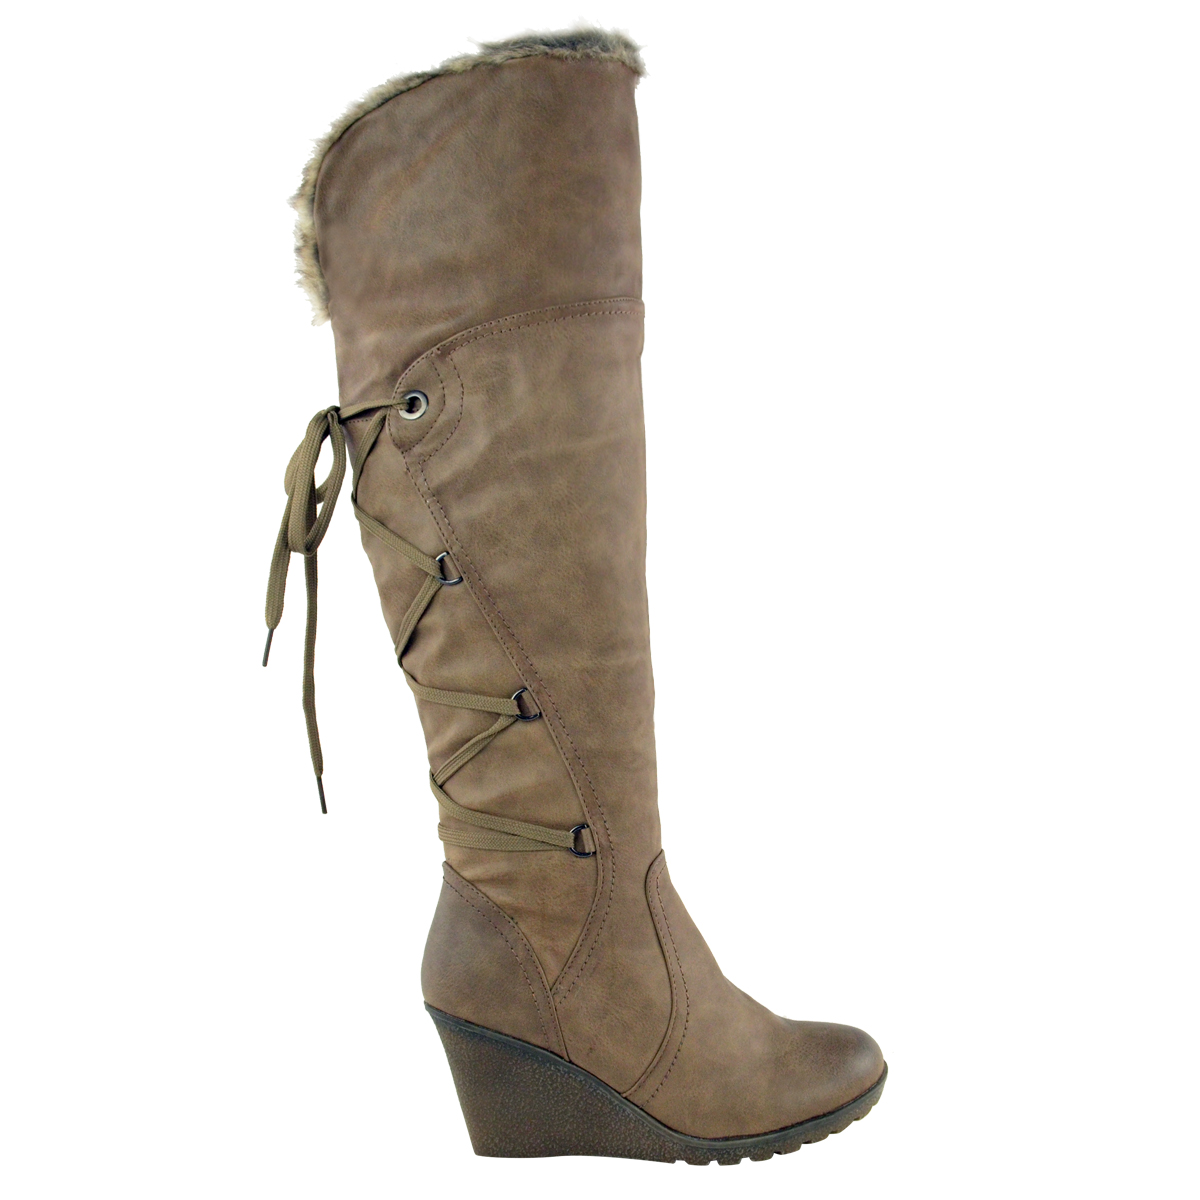 WOMENS-LADIES-MID-WEDGE-HIGH-HEEL-FUR-LINED-WARM-WINTER-KNEE-CALF-ZIP-BOOTS-SIZE thumbnail 16